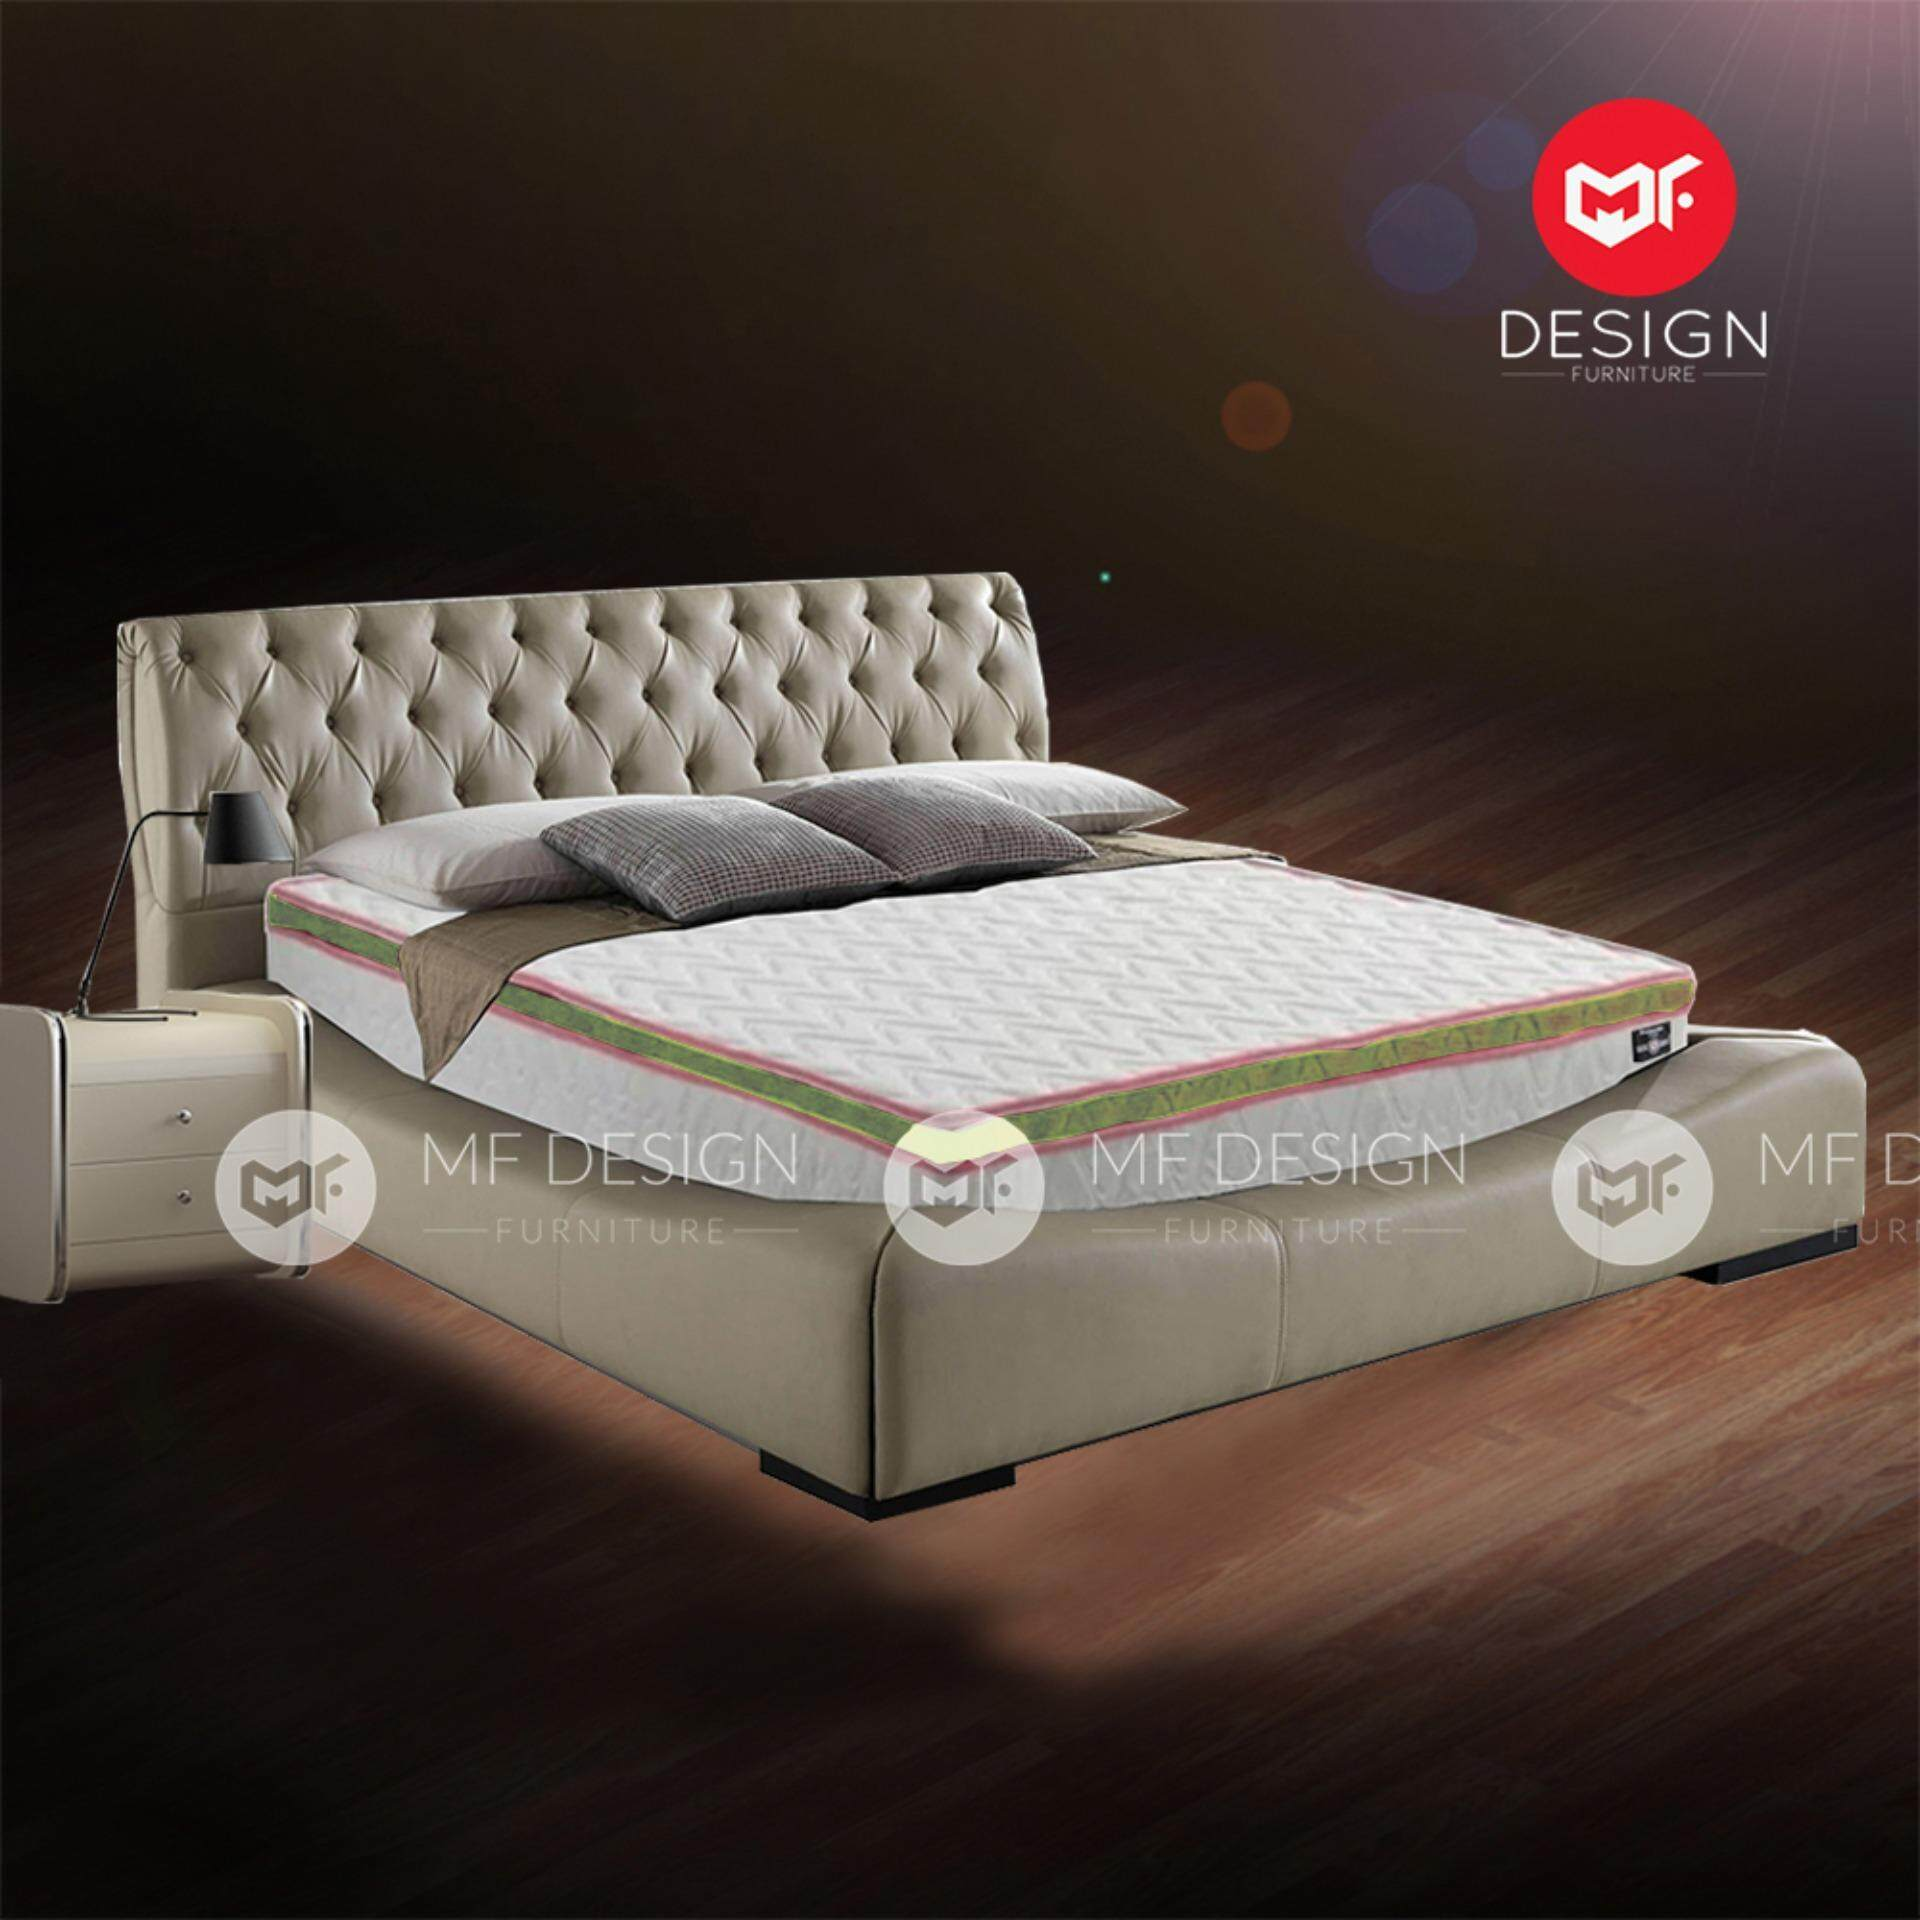 mf design vs series 2hotel spec high quality 10 inch queen size spring mattress lazada malaysia